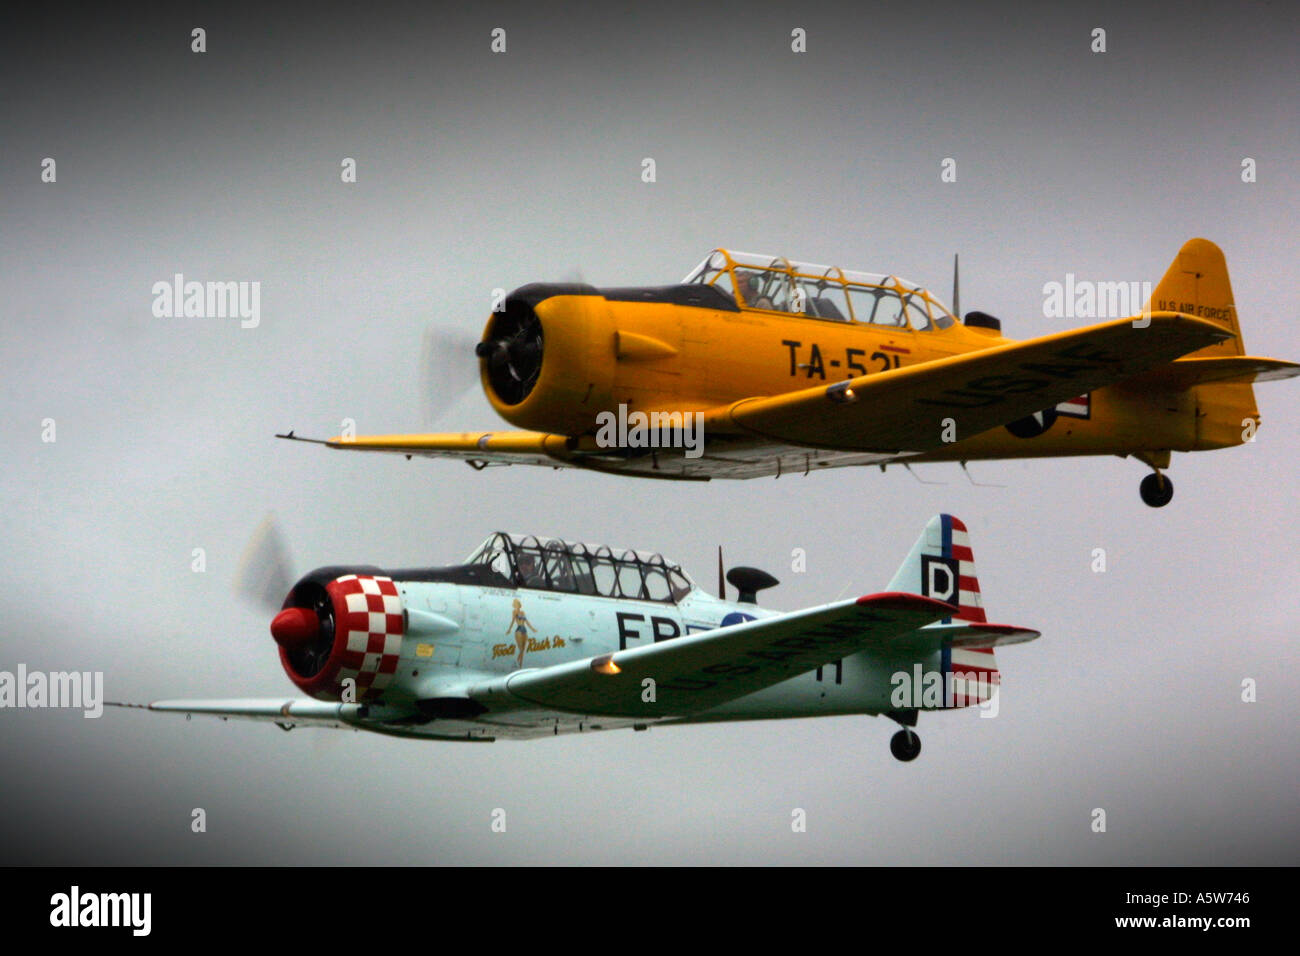 United States of America Airforce Second World War Harvard Fighter Planes - Stock Image